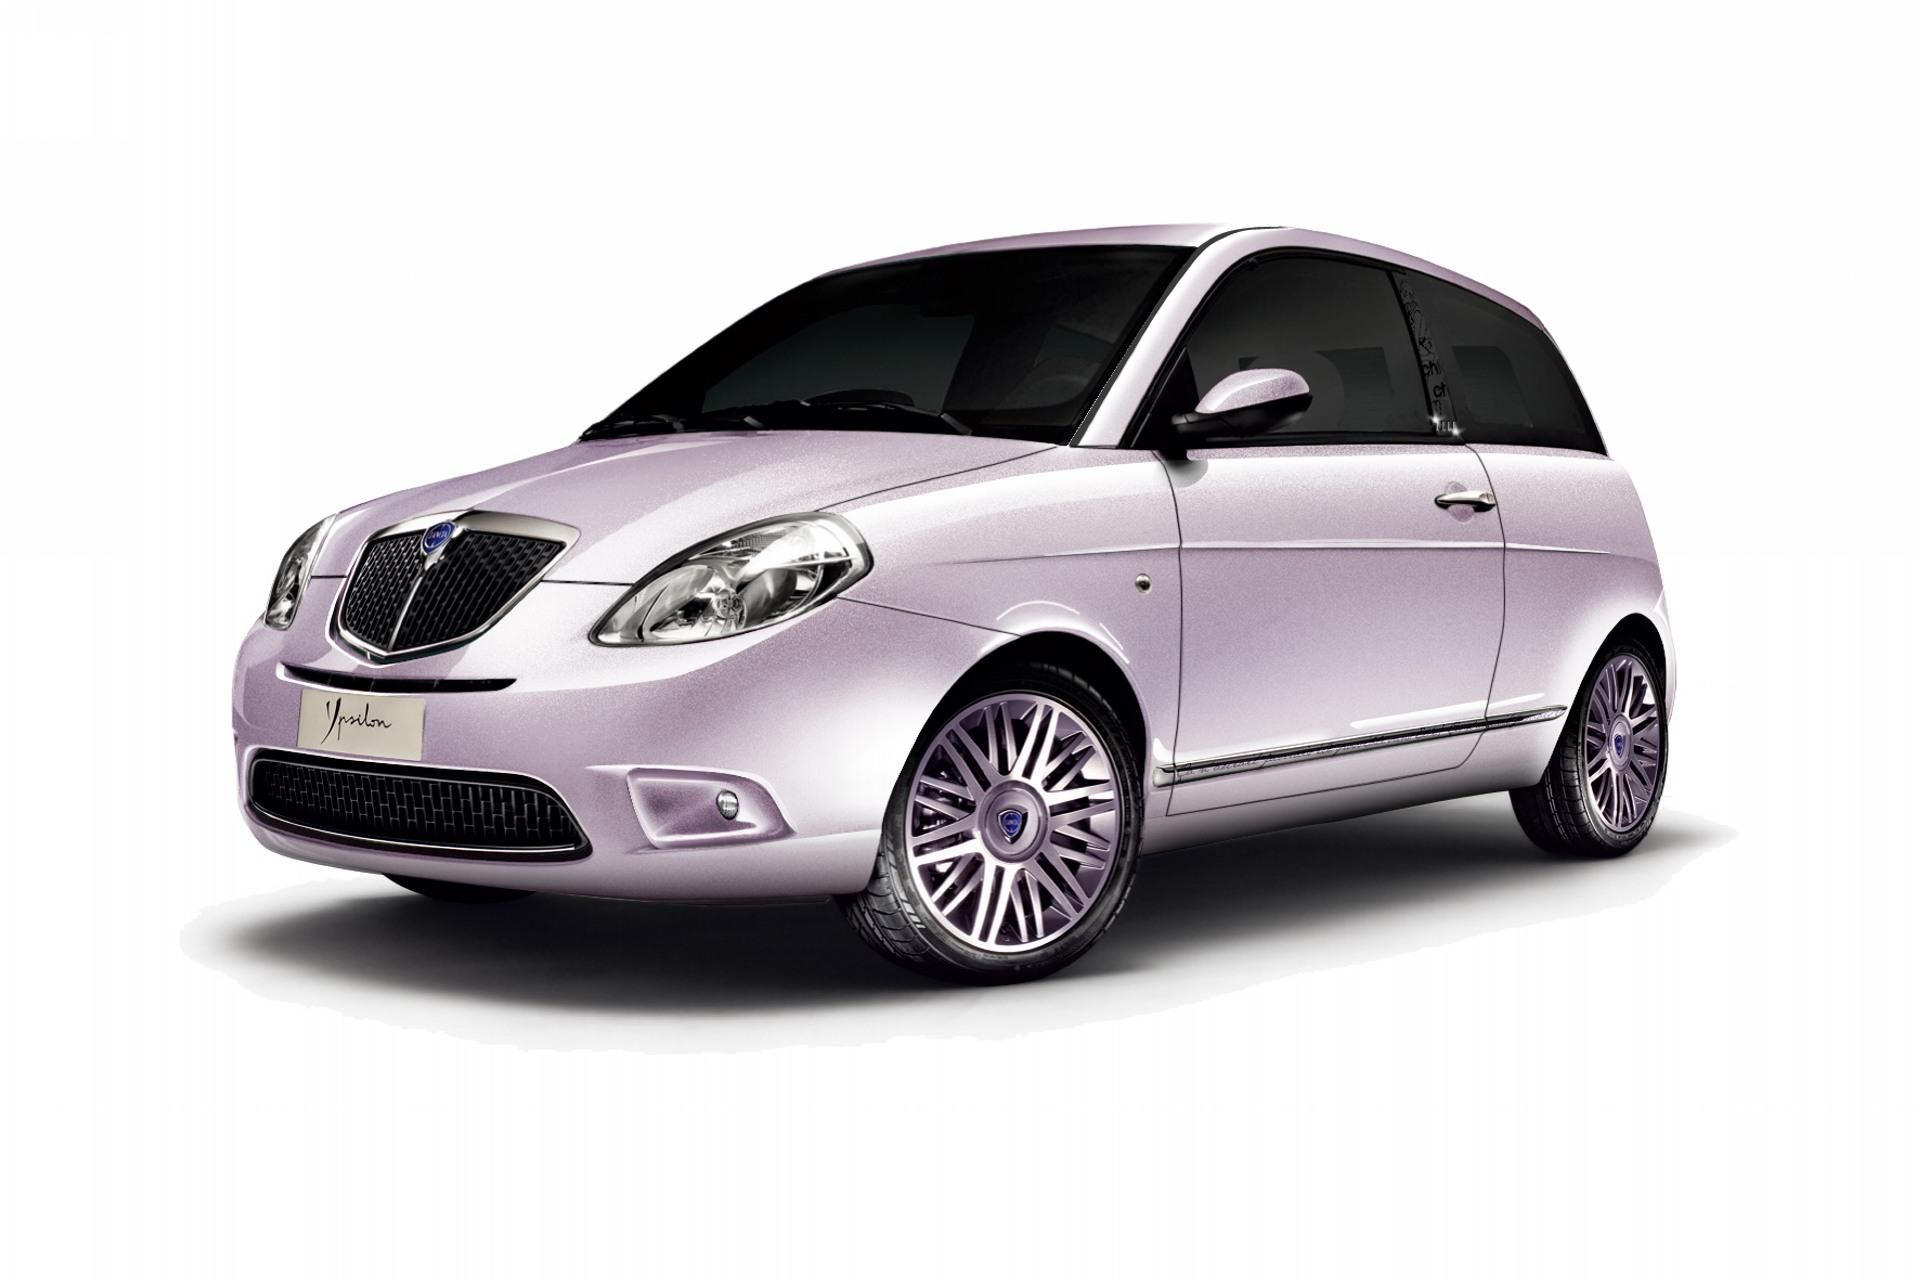 2010 Lancia Ypsilon Elle News And Information